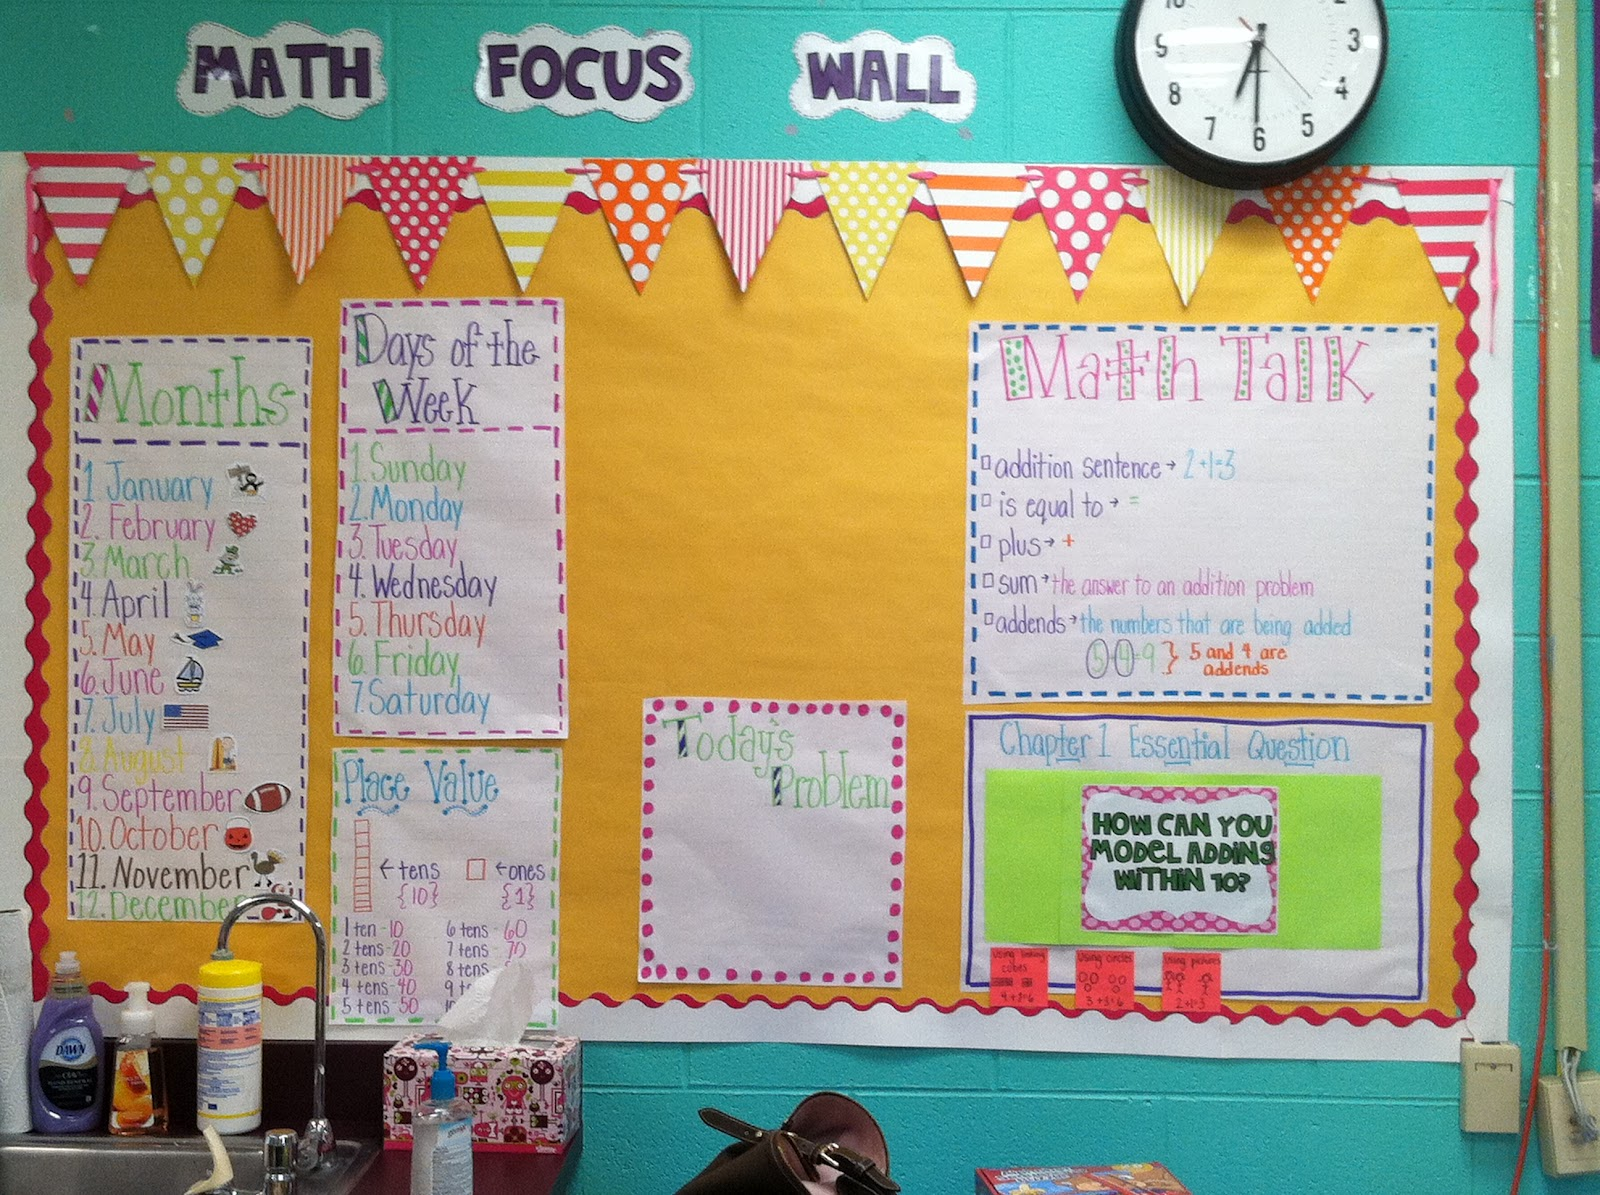 Southern Sweetie In Second Math Focus Board